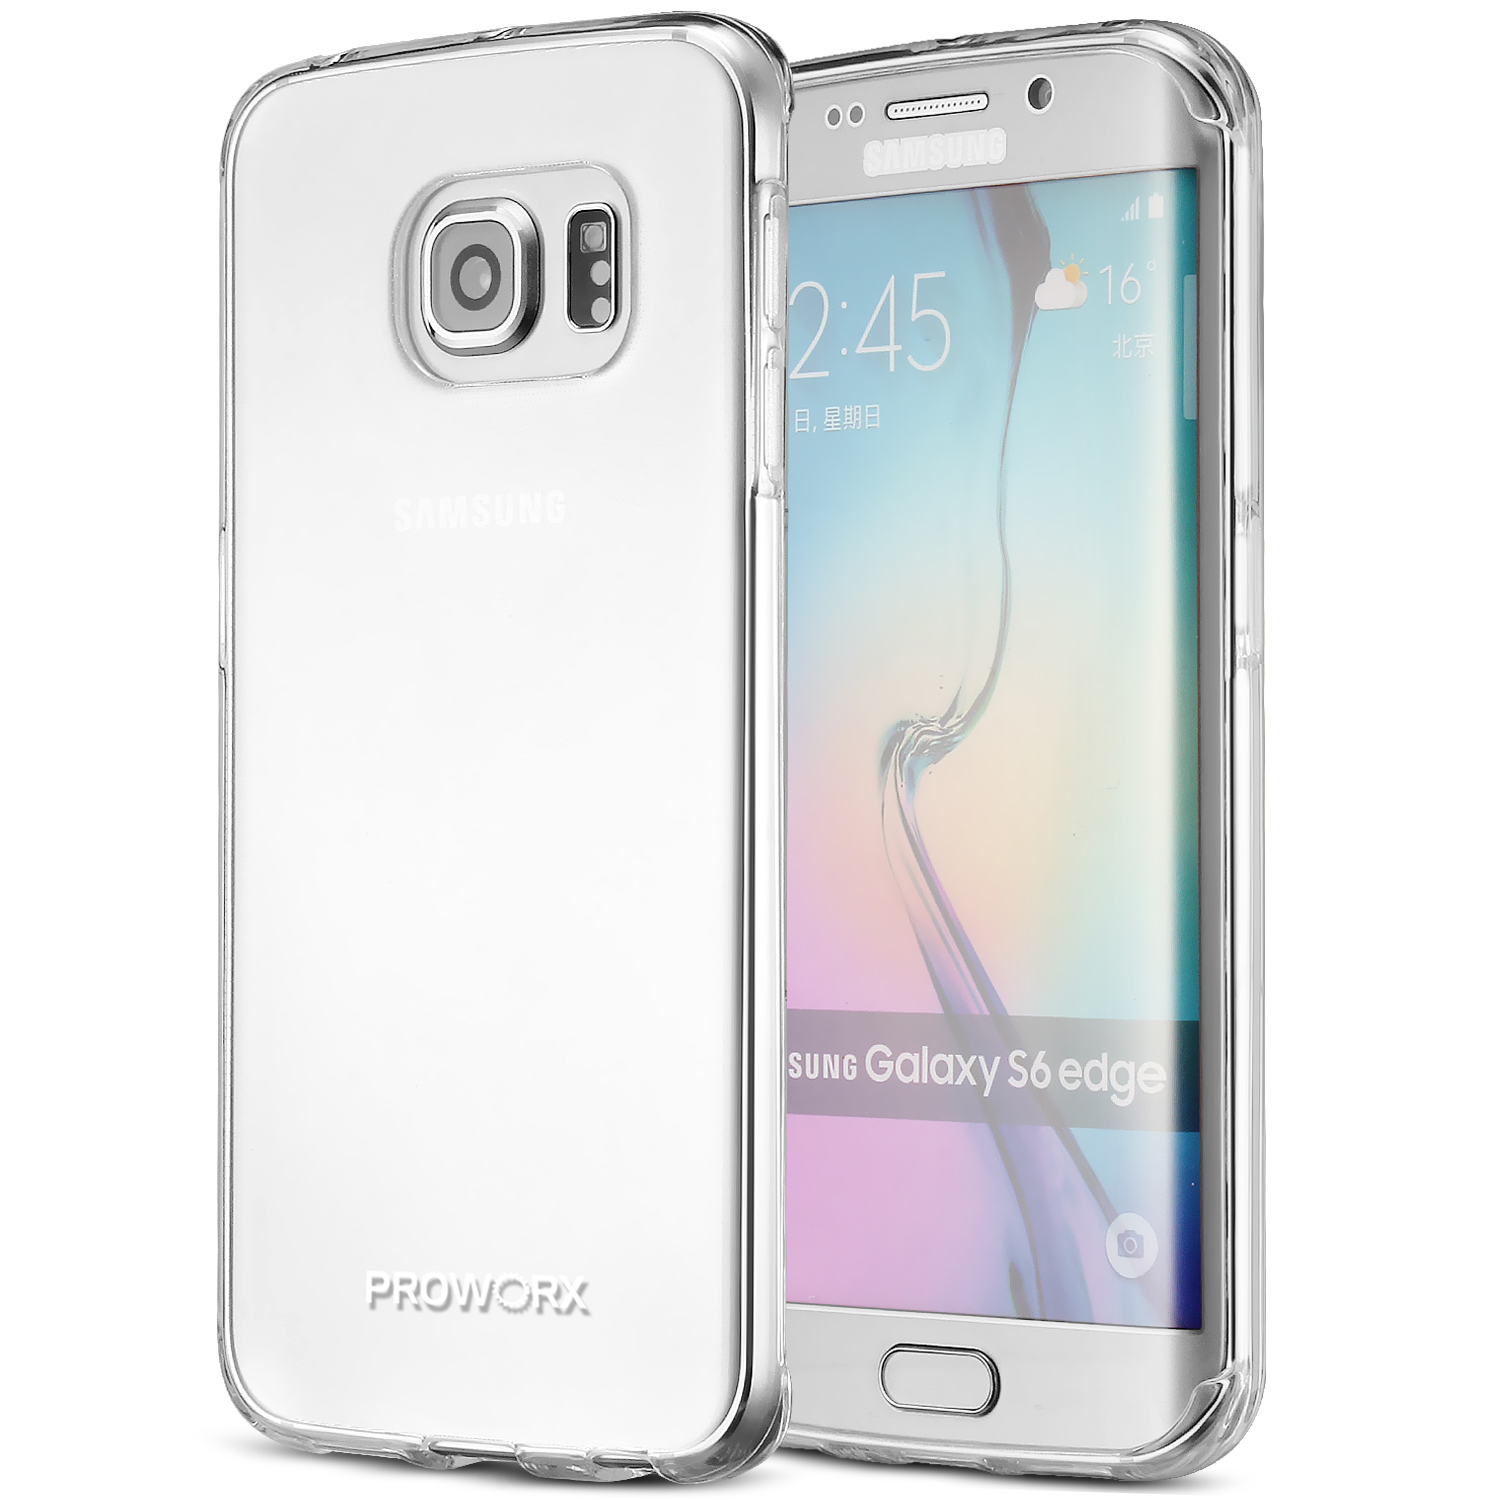 Samsung Galaxy S6 Edge Plus + Clear ProWorx Ultra Slim Thin Scratch Resistant TPU Silicone Case Cover